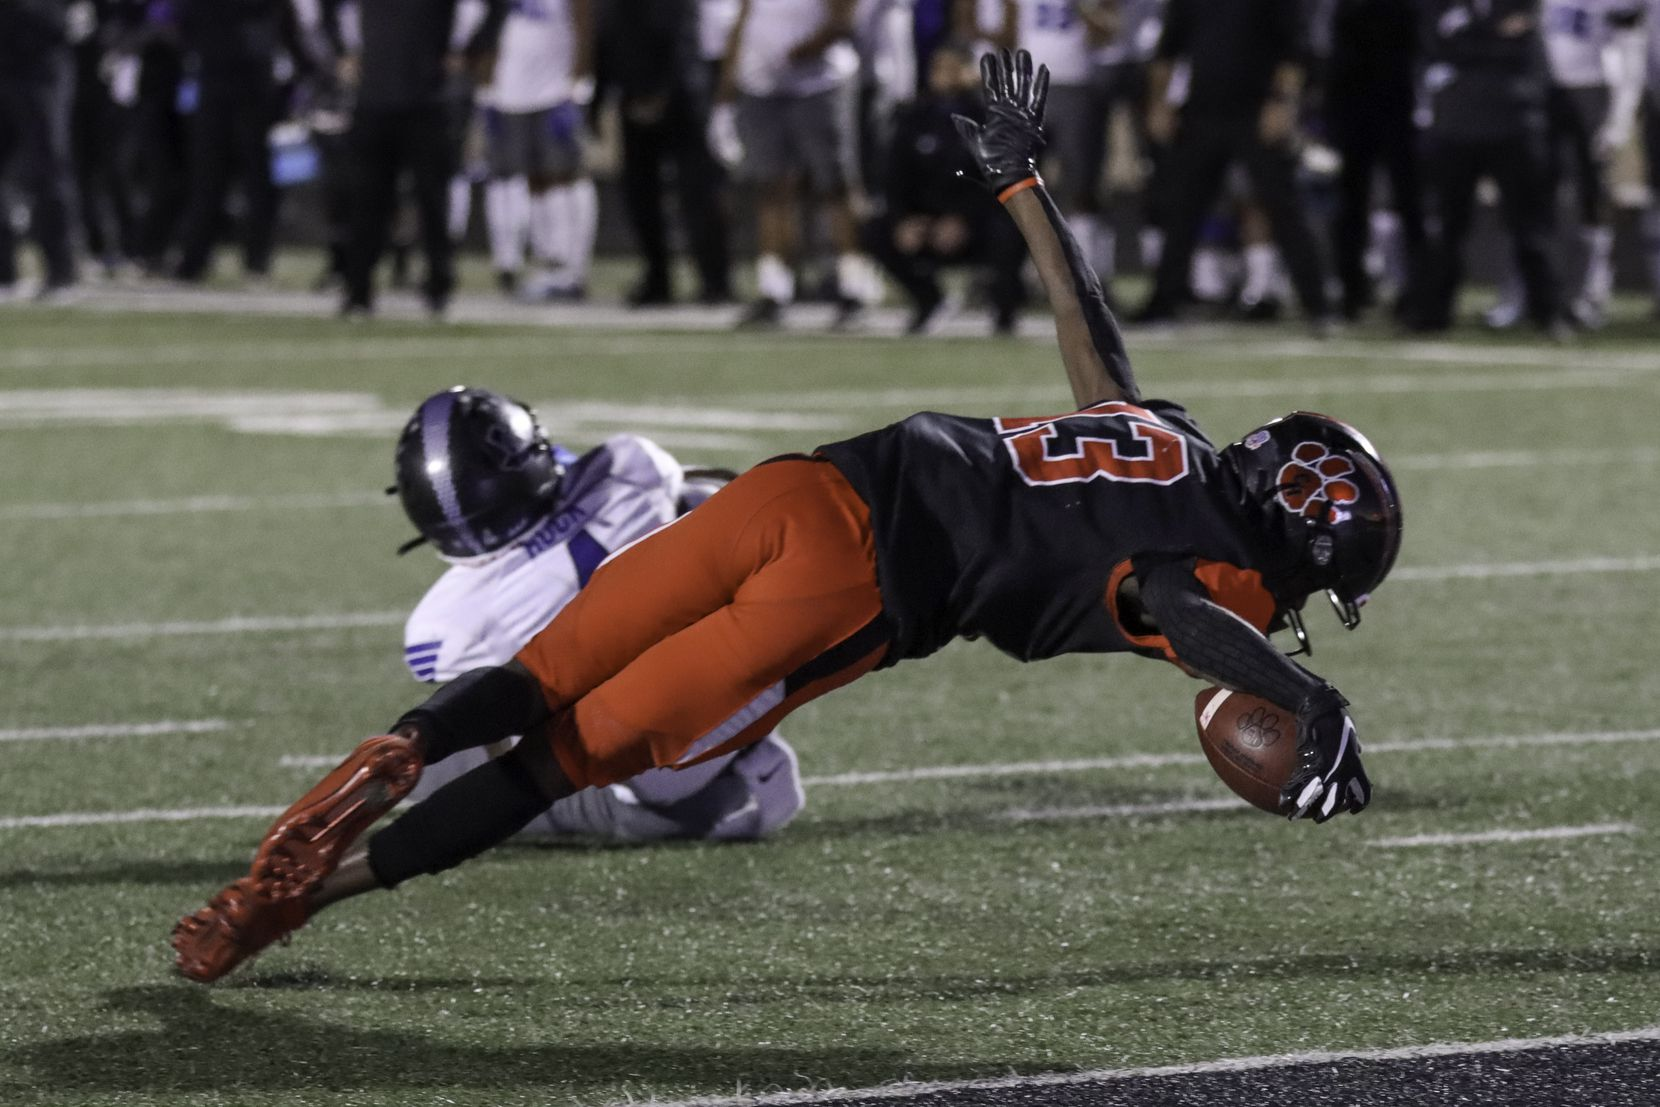 Colleyville Heritage wide receiver Leon Covington (13) stretches for a touchdown during the second half against Mansfield Summit at Bearcat Stadium in Aledo, Texas, Saturday, December 26, 2020. (Elias Valverde II / Special Contributor)